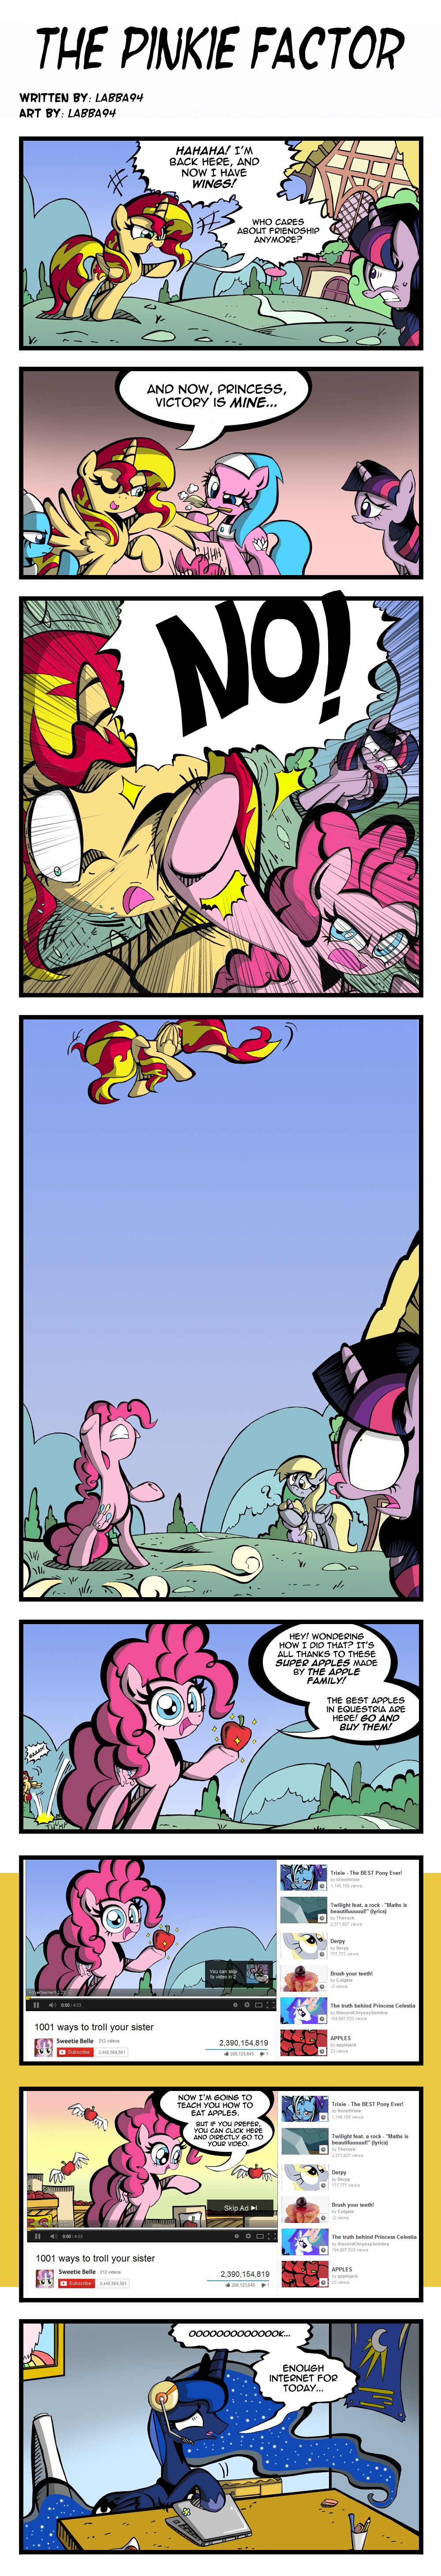 The Pinkie Factor